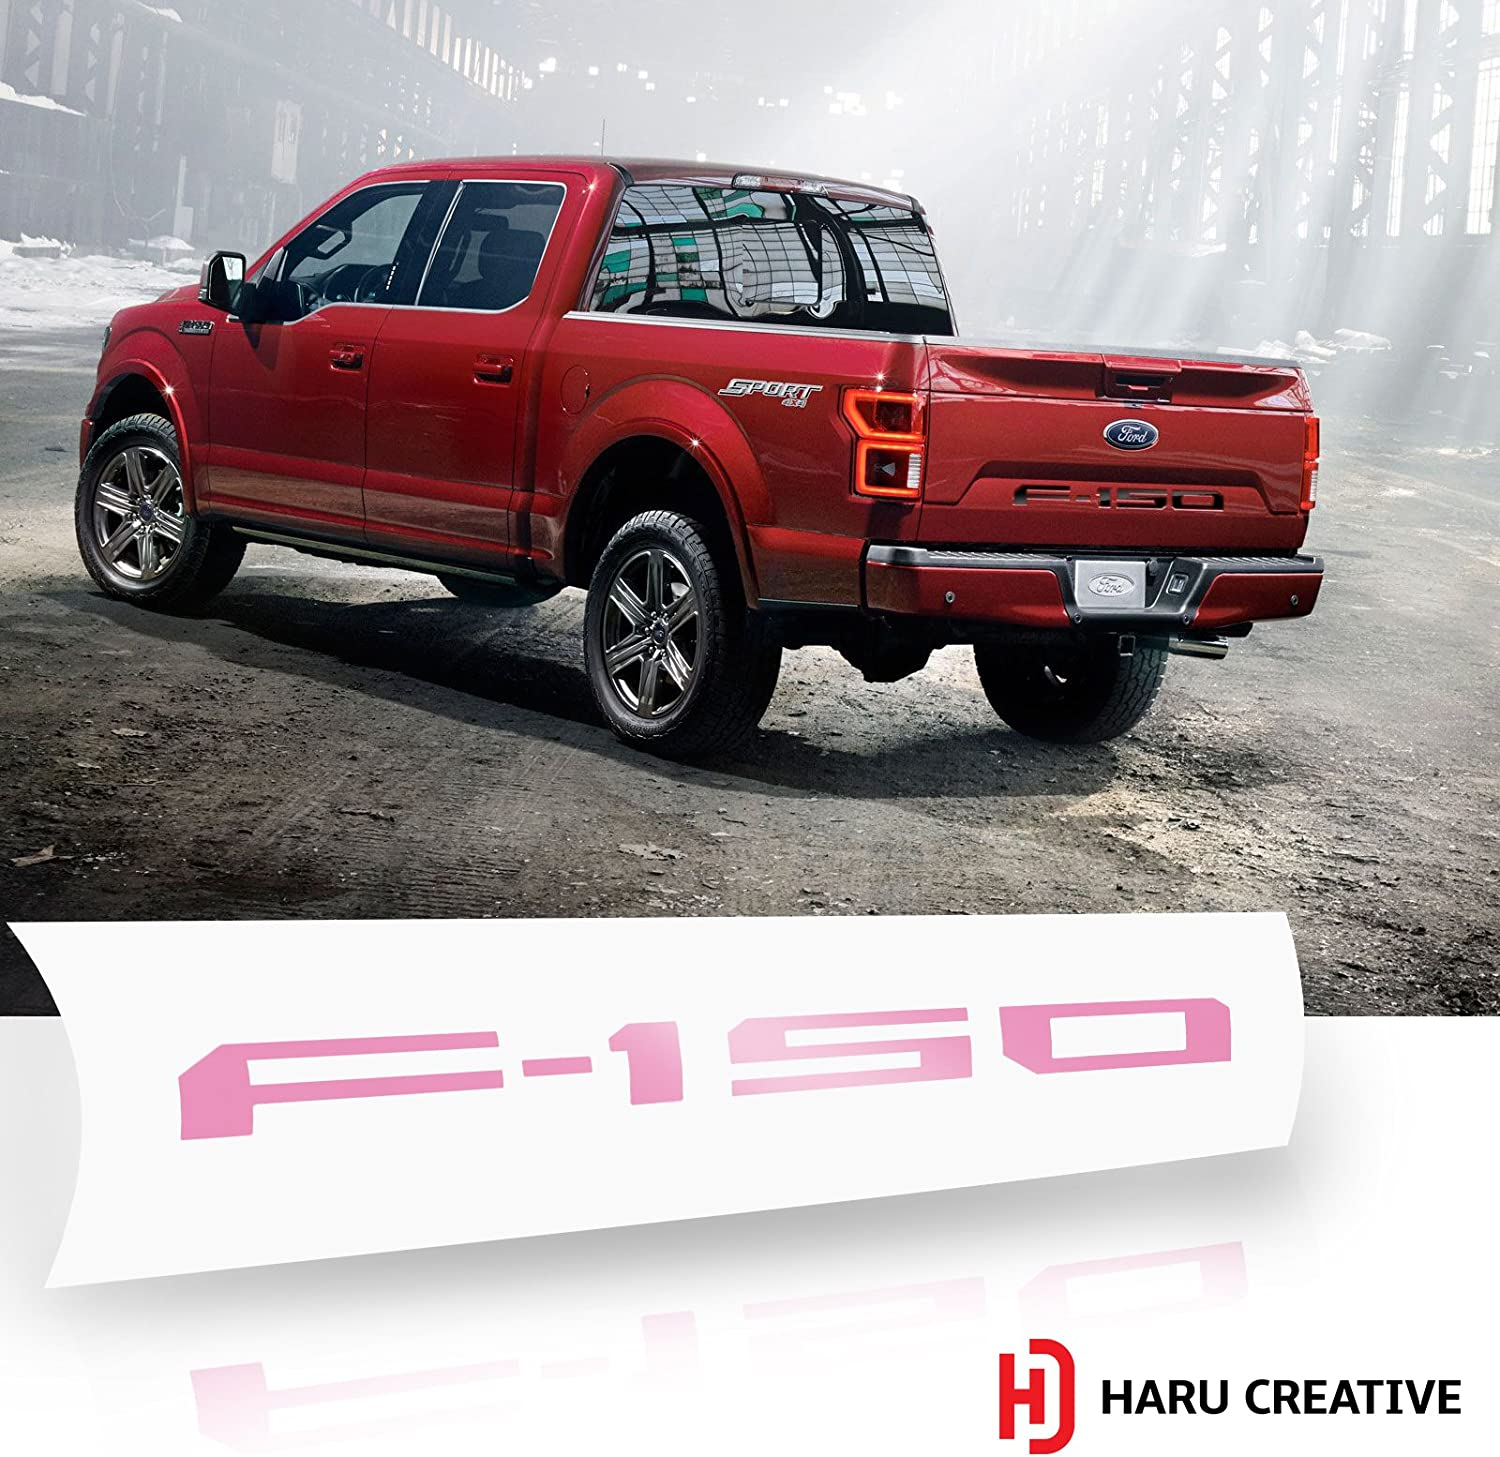 Gloss Pink Haru Creative Rear Tailgate Letter Insert Overlay Decal Compatible with and Fits 2018 Ford F150 F-150